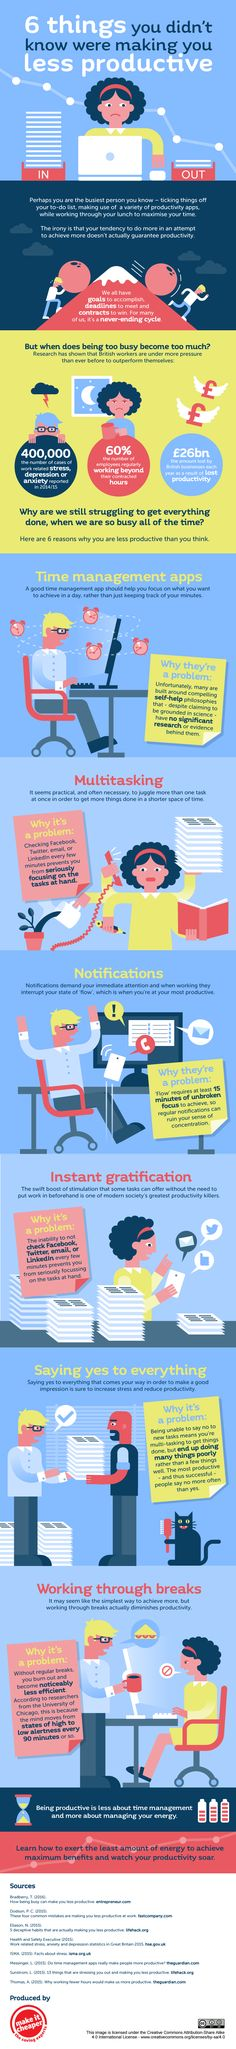 Feel like a failure after eight a full dayon the job?There are any number of things that impede our productivity, but here are six you may not have considered.Via Make It Cheaper.Get it done with infographics.